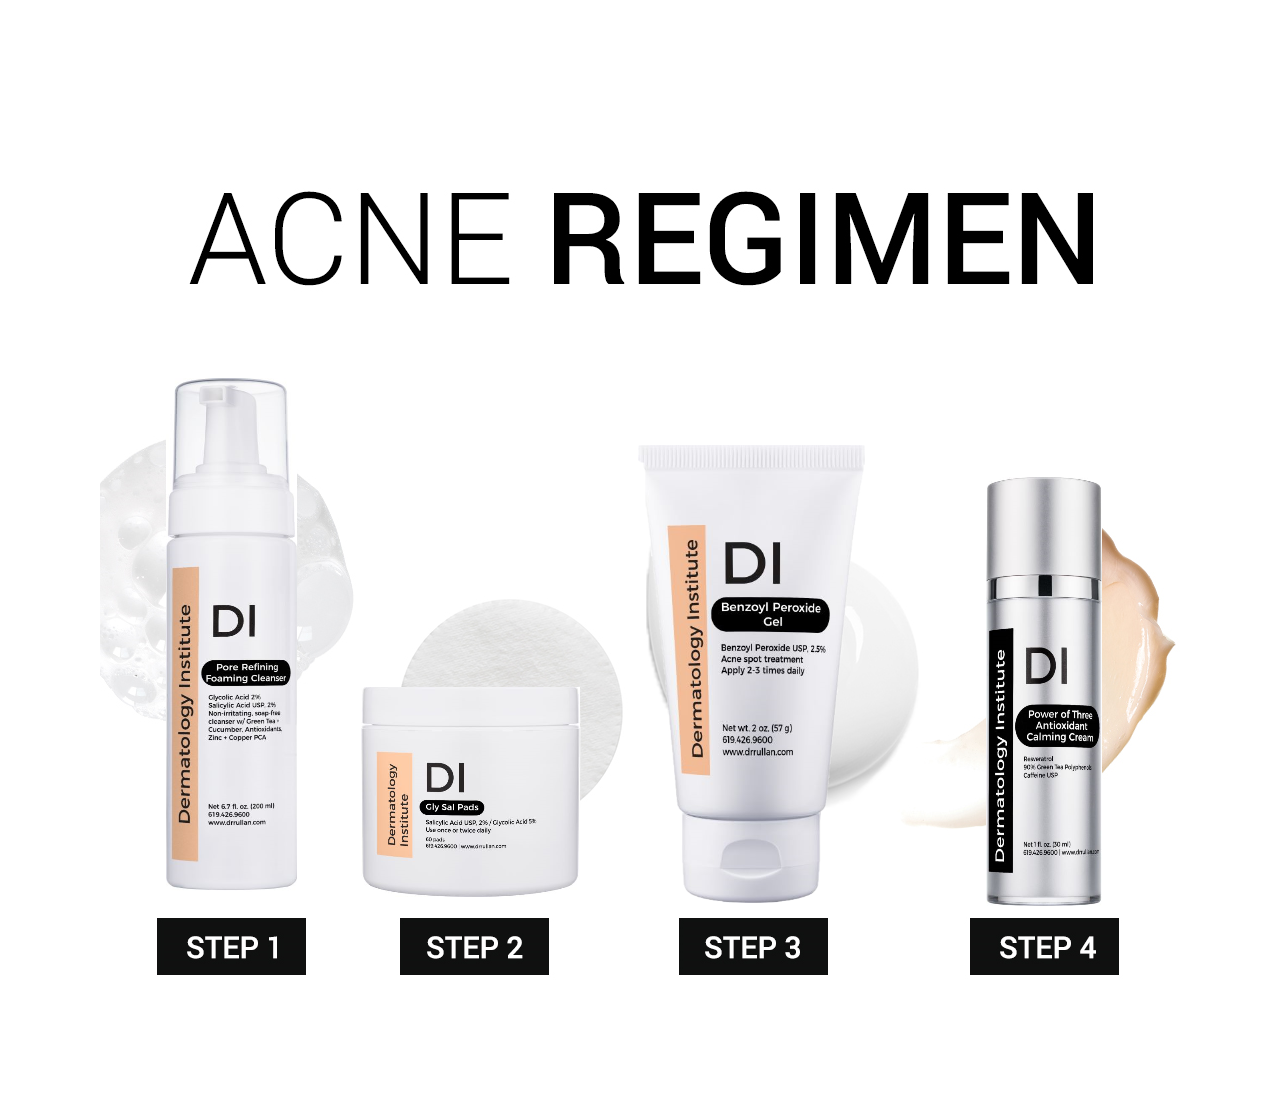 Medical Grade Skincare By Category